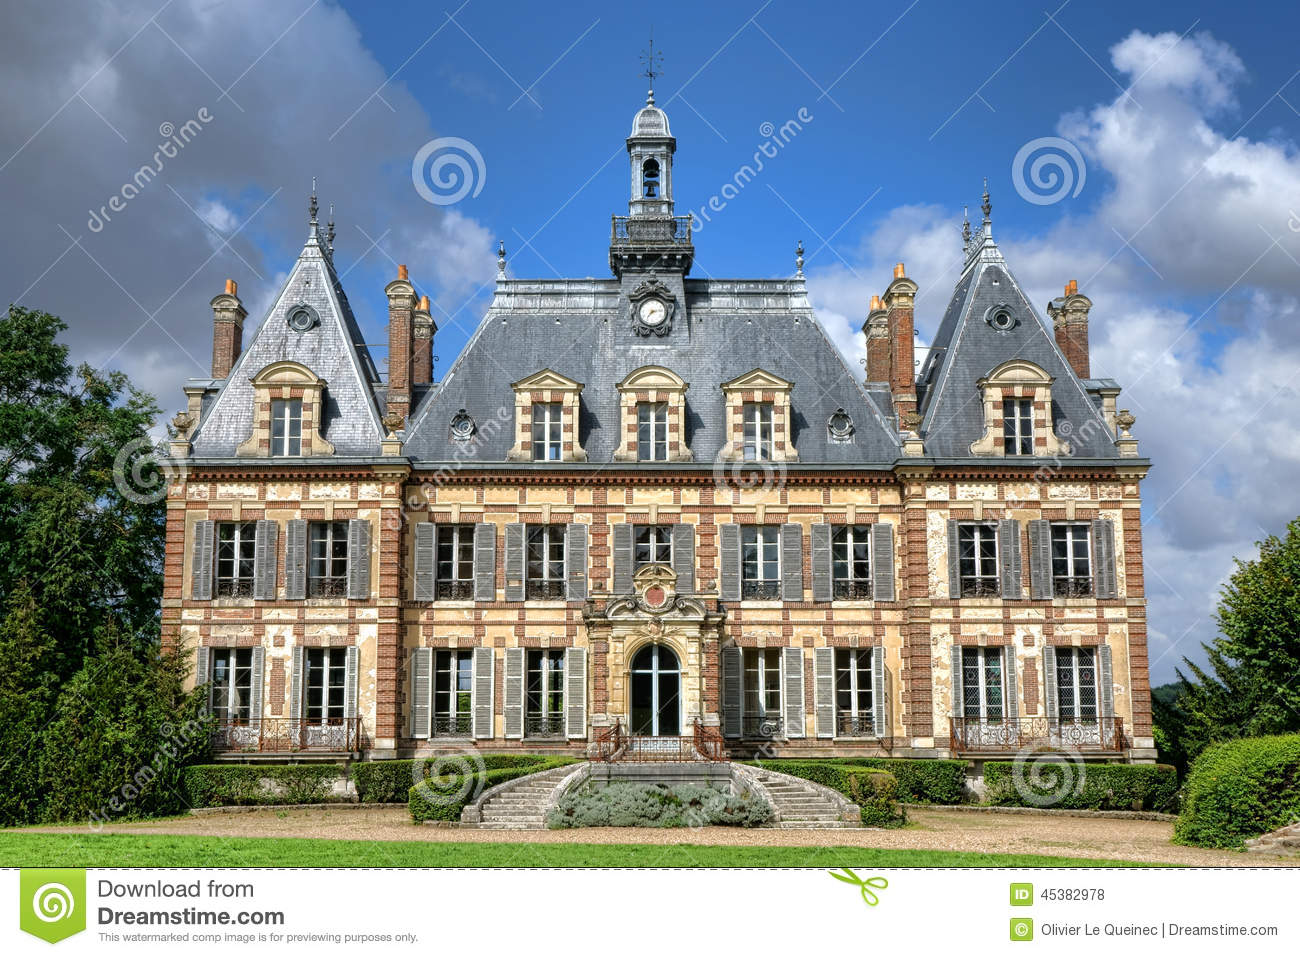 Maison Victorienne Minecraft French Renaissance Revival Antique Mansion Castle Stock